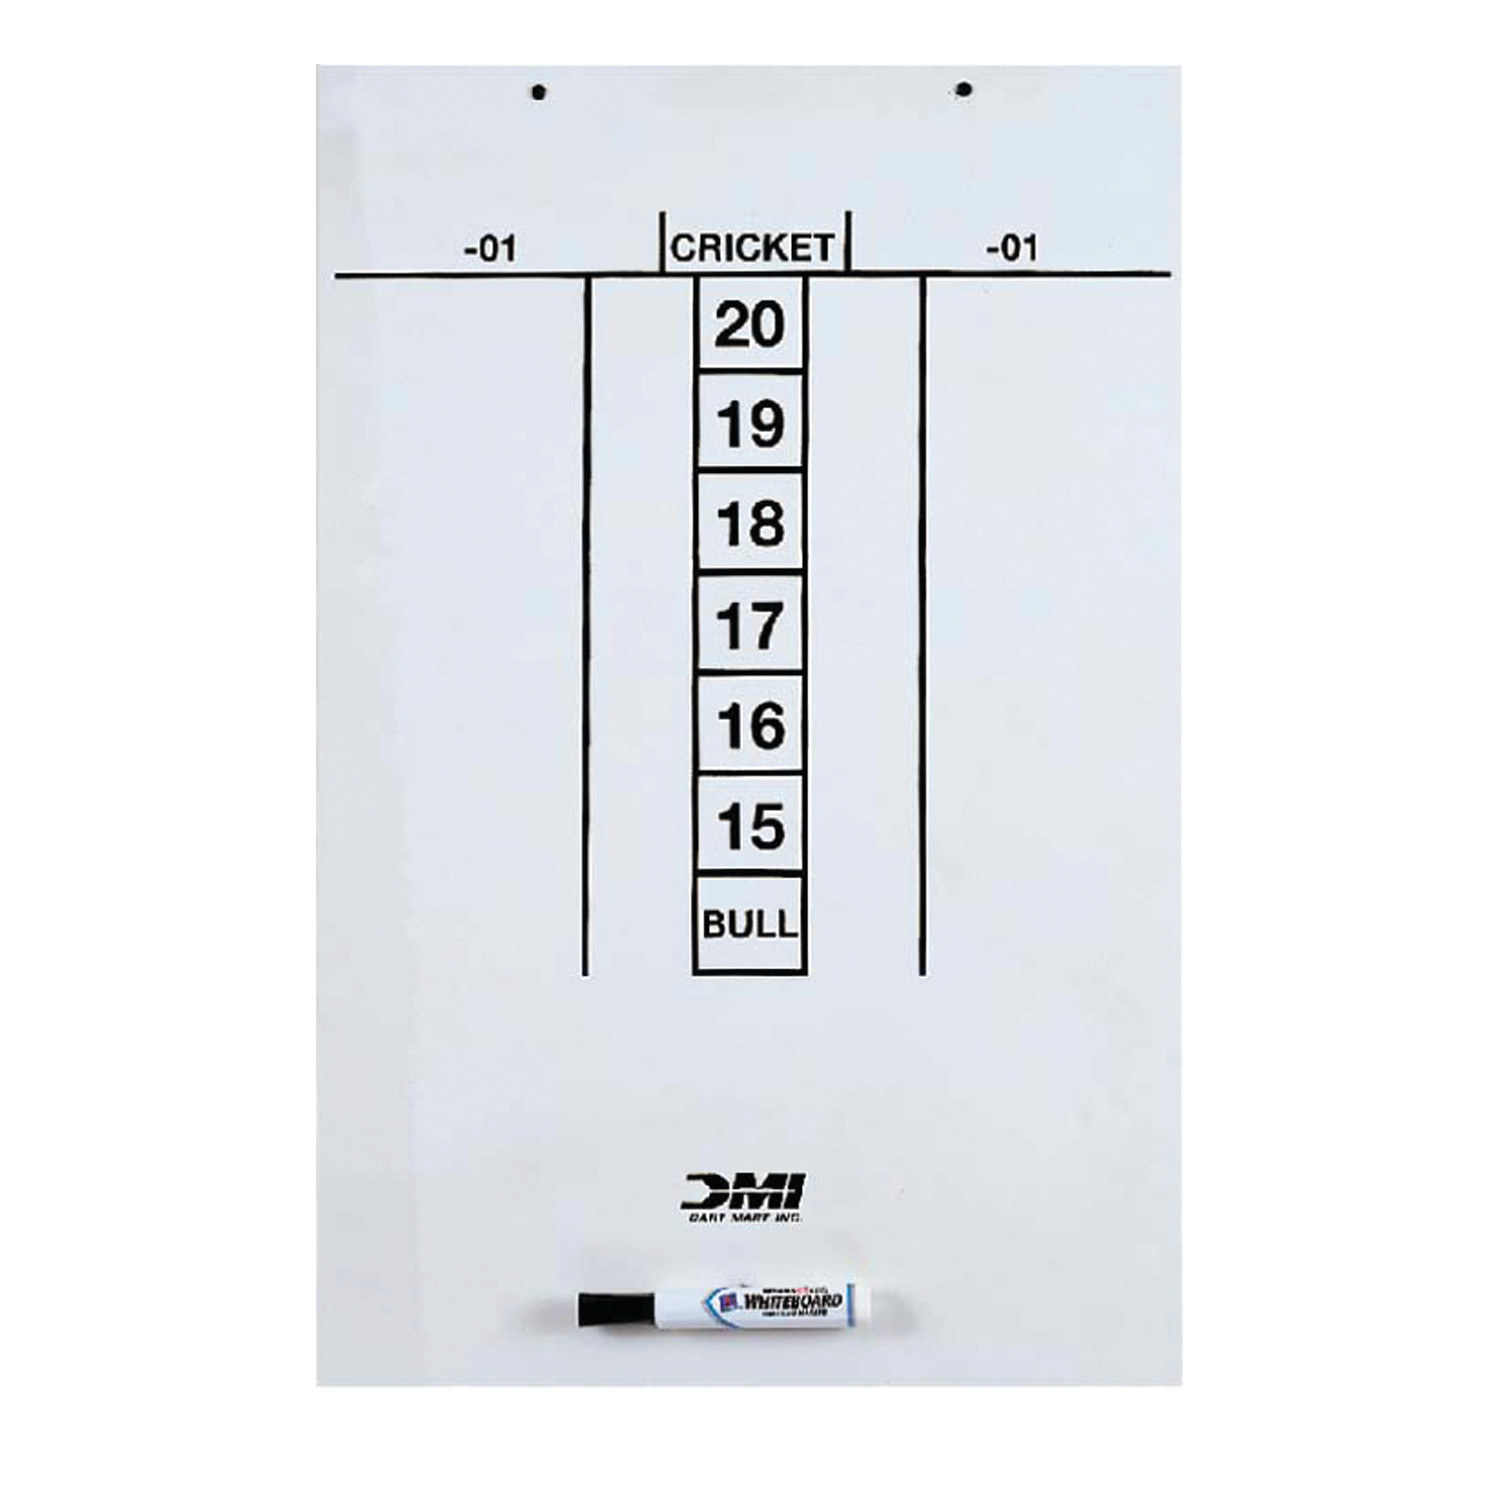 DMI Sports Darts Dry Erase Boards for Easy Scoring of Cricket with Dry Erase Marker Included